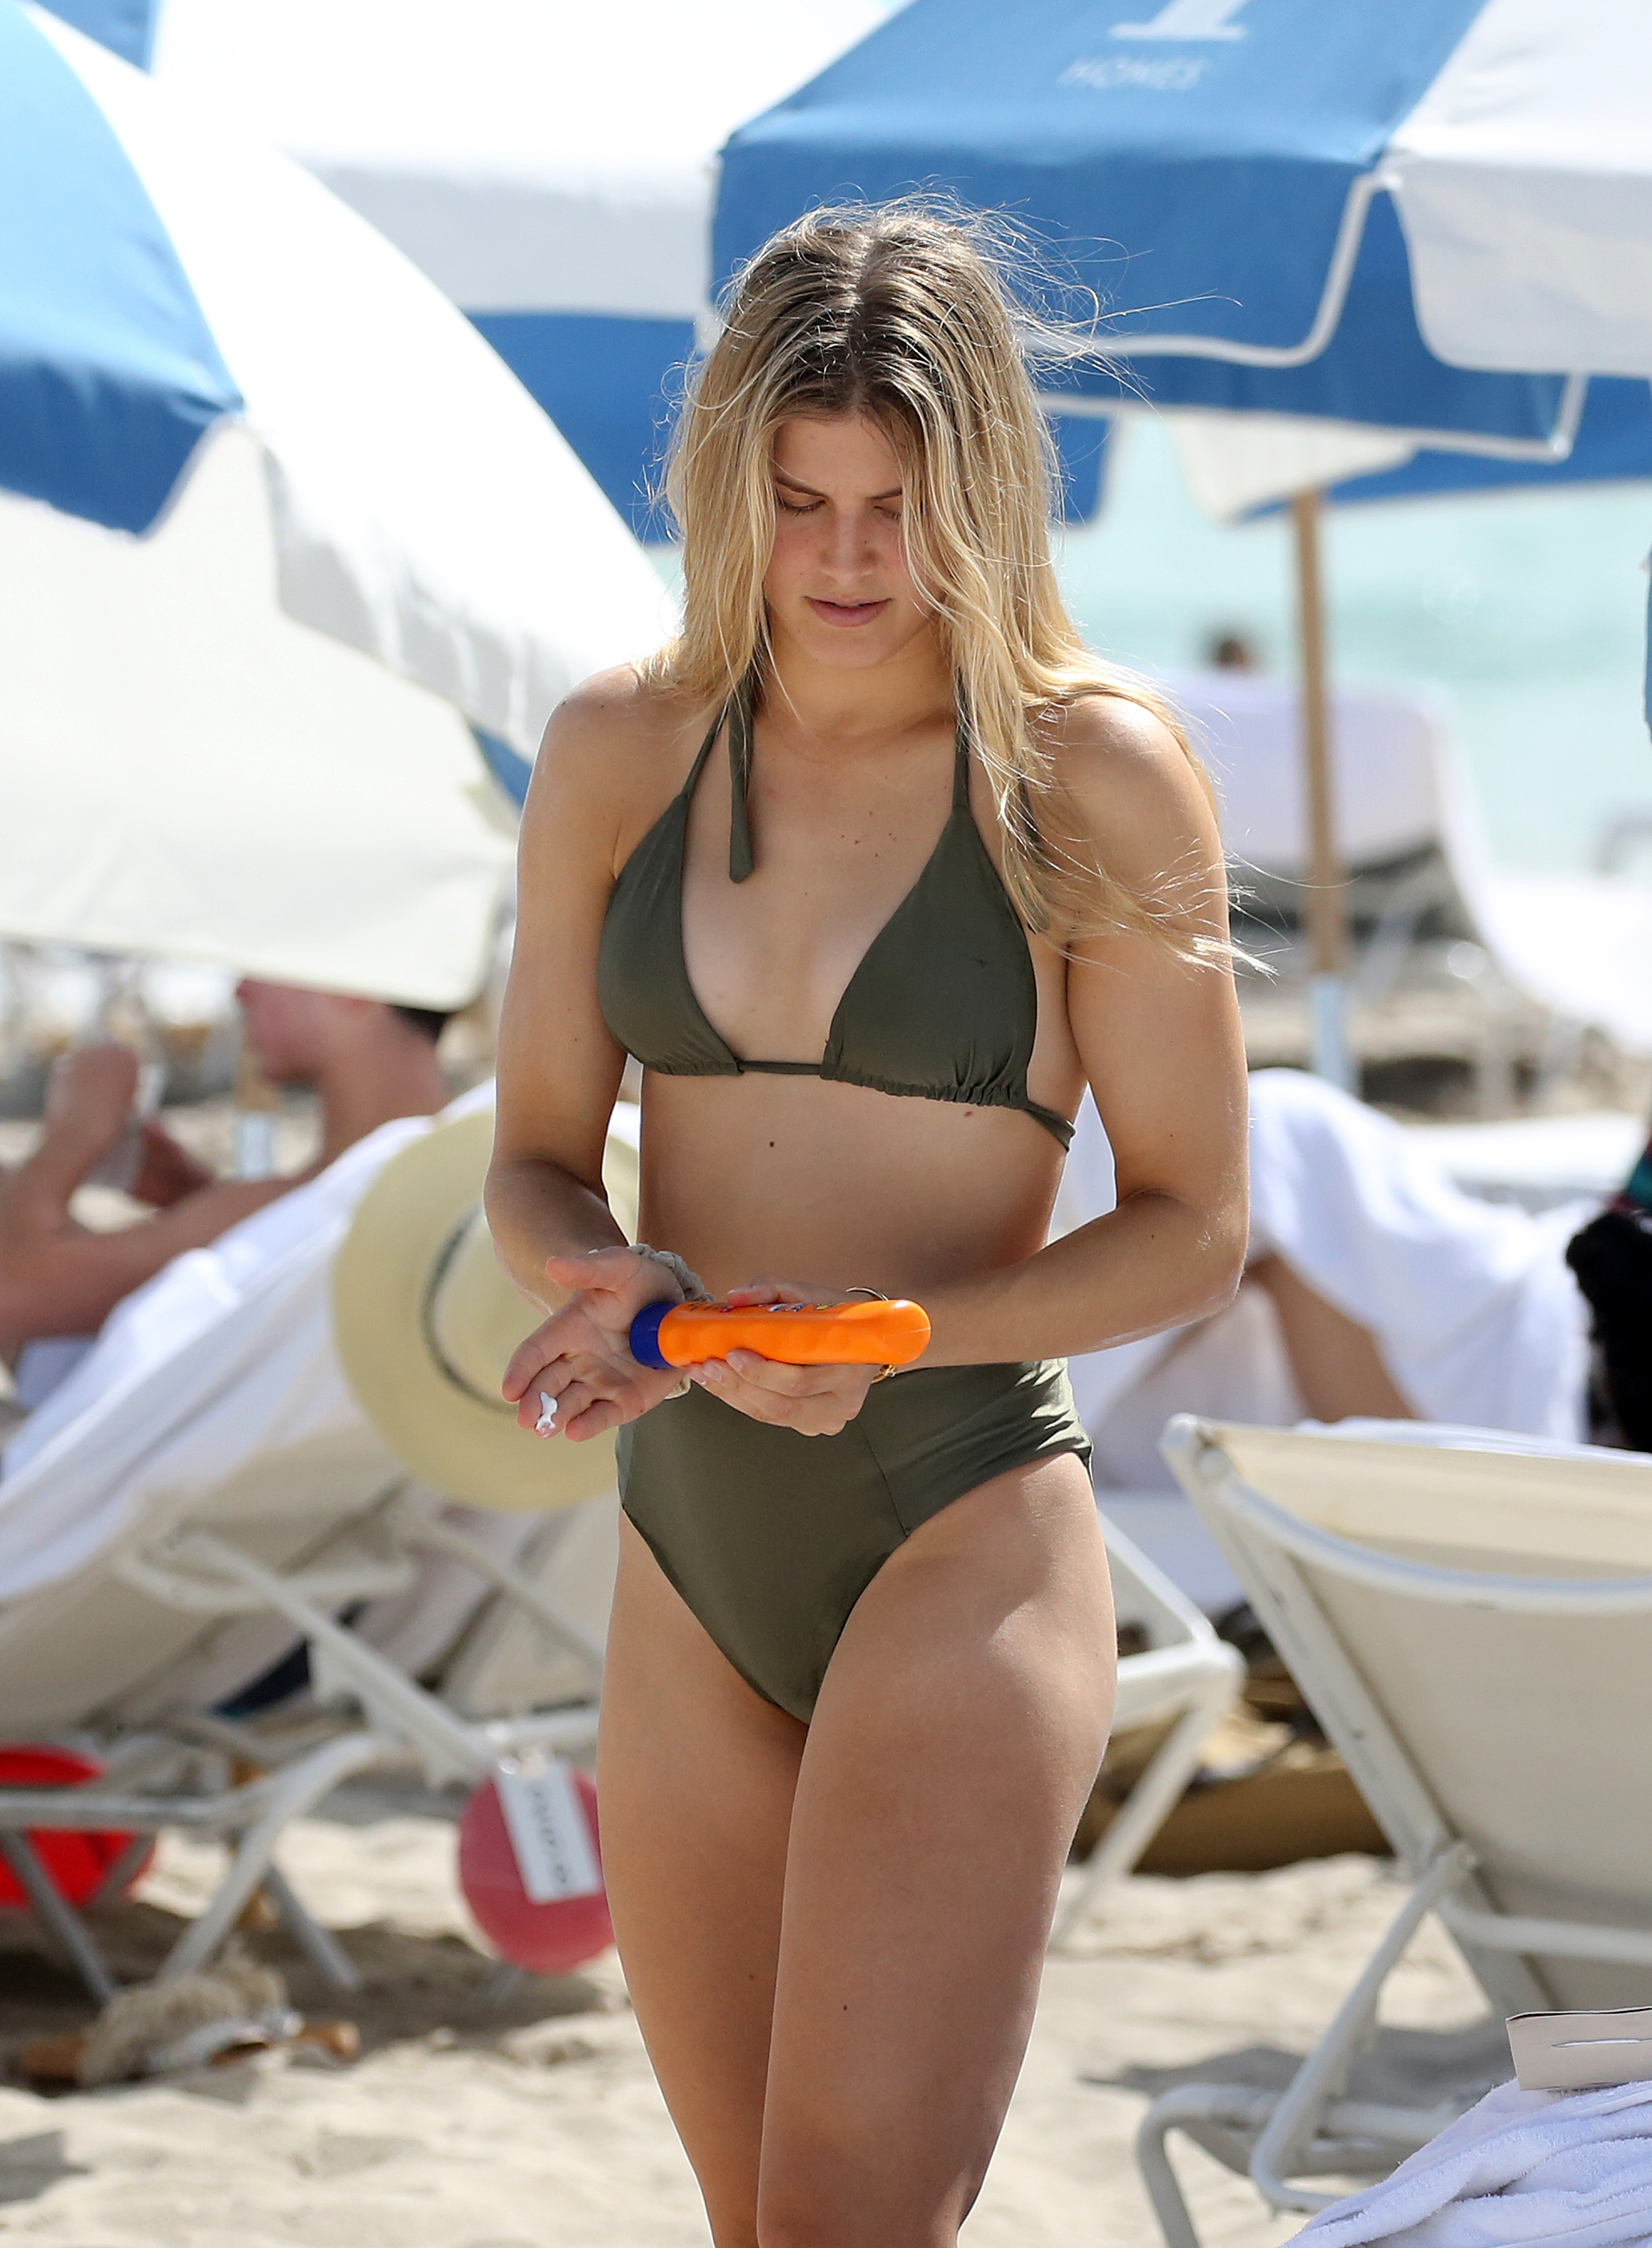 Bouchard needed help with her cream on Miami beach, where the heat was on...